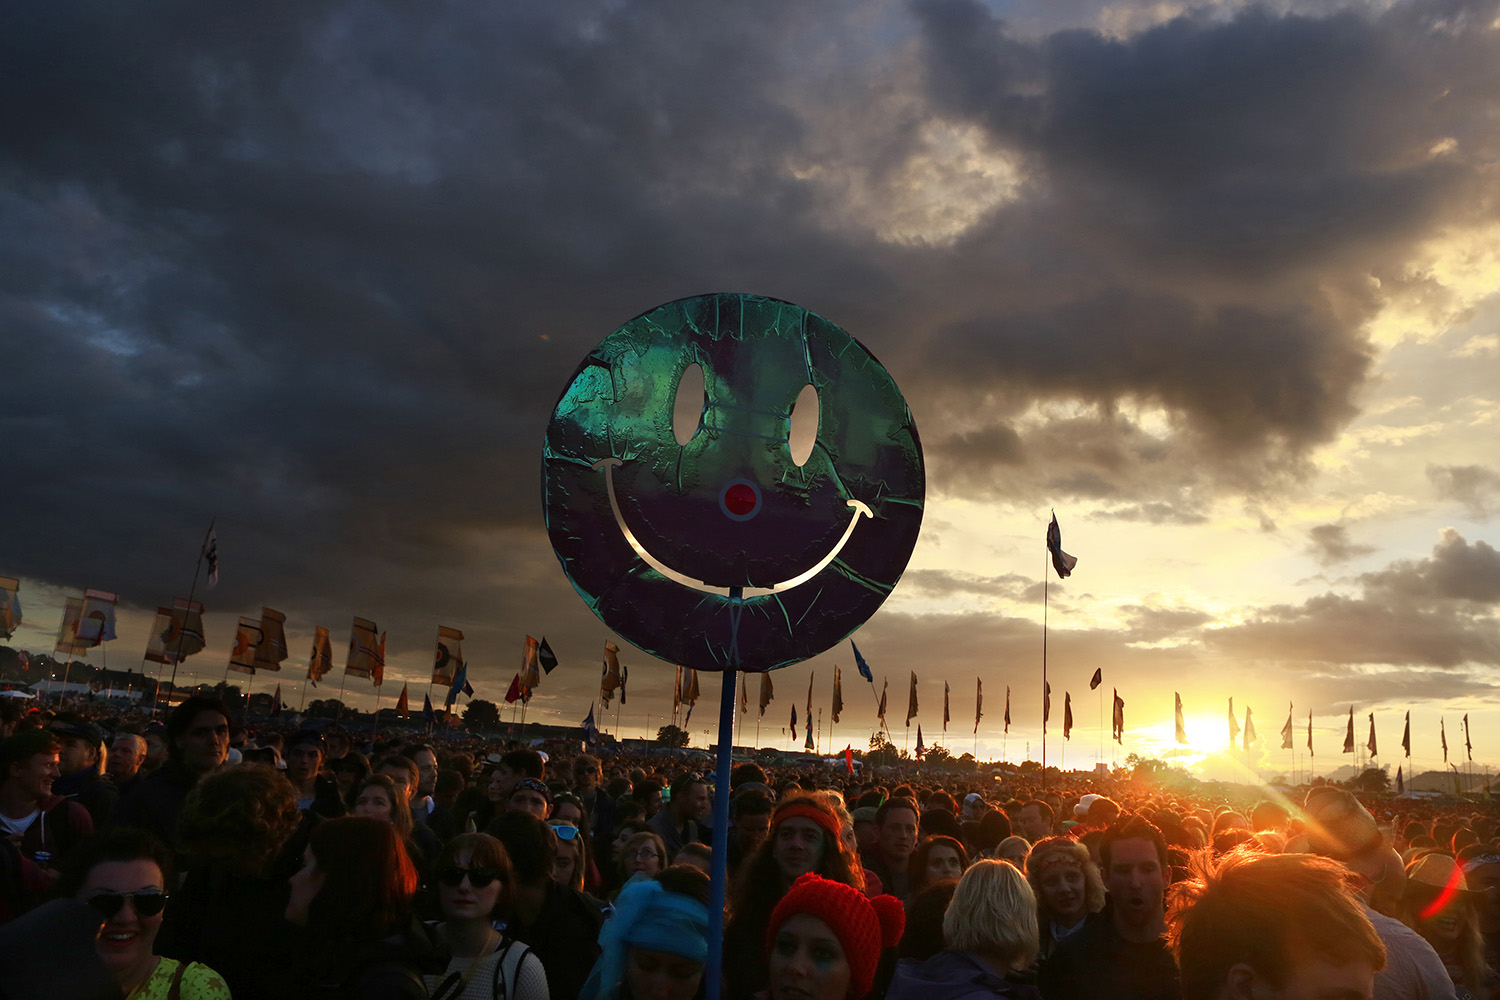 June 27, 2014. A smiley face is held up by a festival-goer as the sun sets in front of the Other Stage at Worthy Farm in Somerset, England, during the Glastonbury Festival.